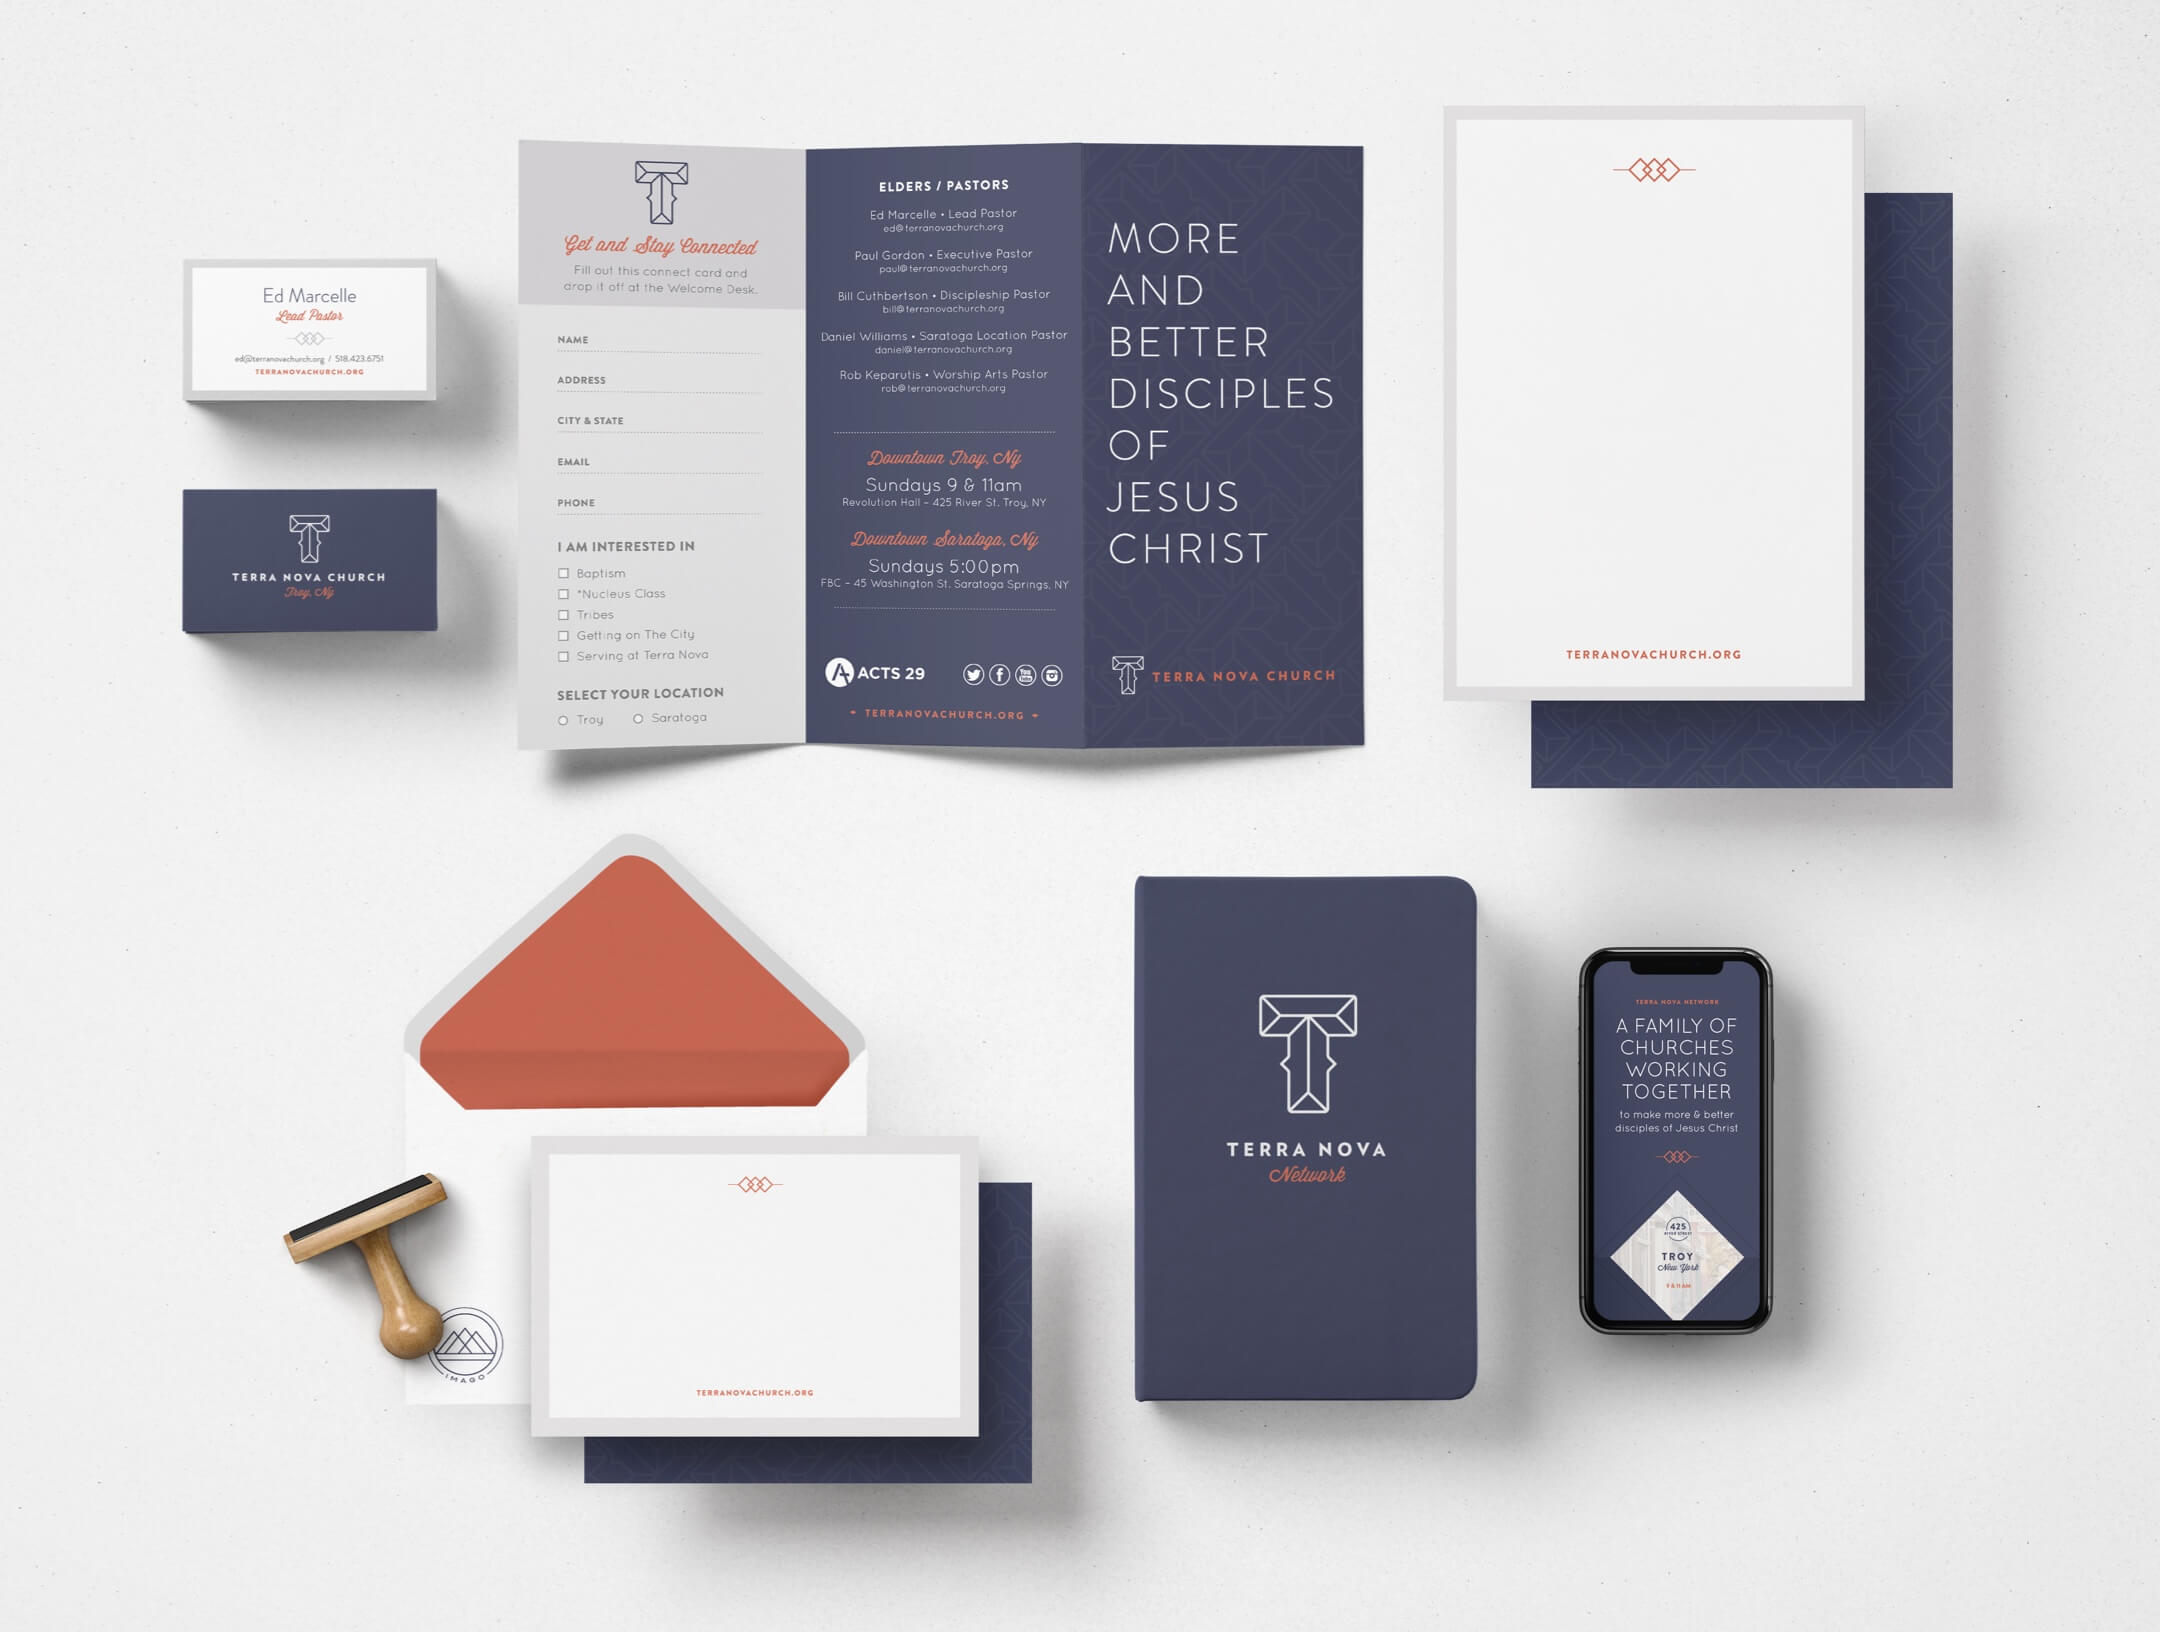 Terra Nova Church brand elements